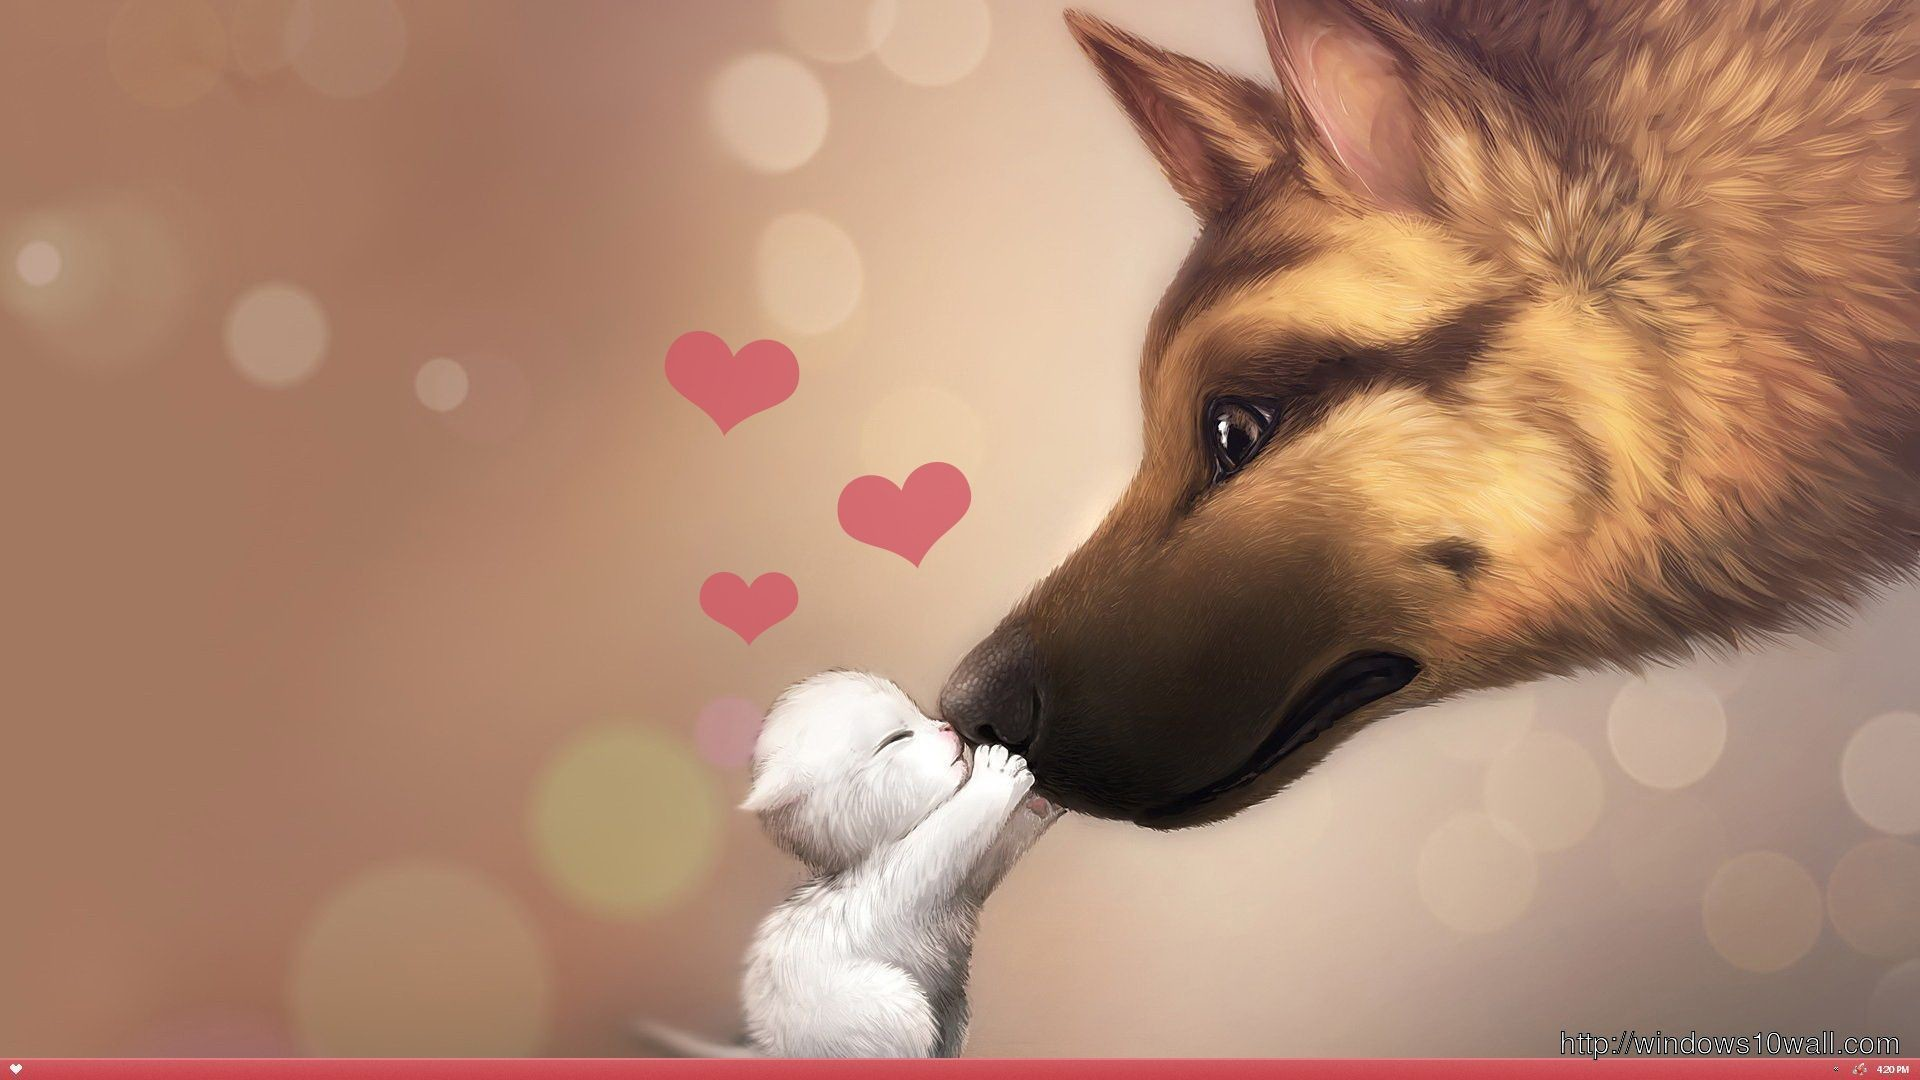 Valentines Day Cat And Dog Love Hd Wallpaper